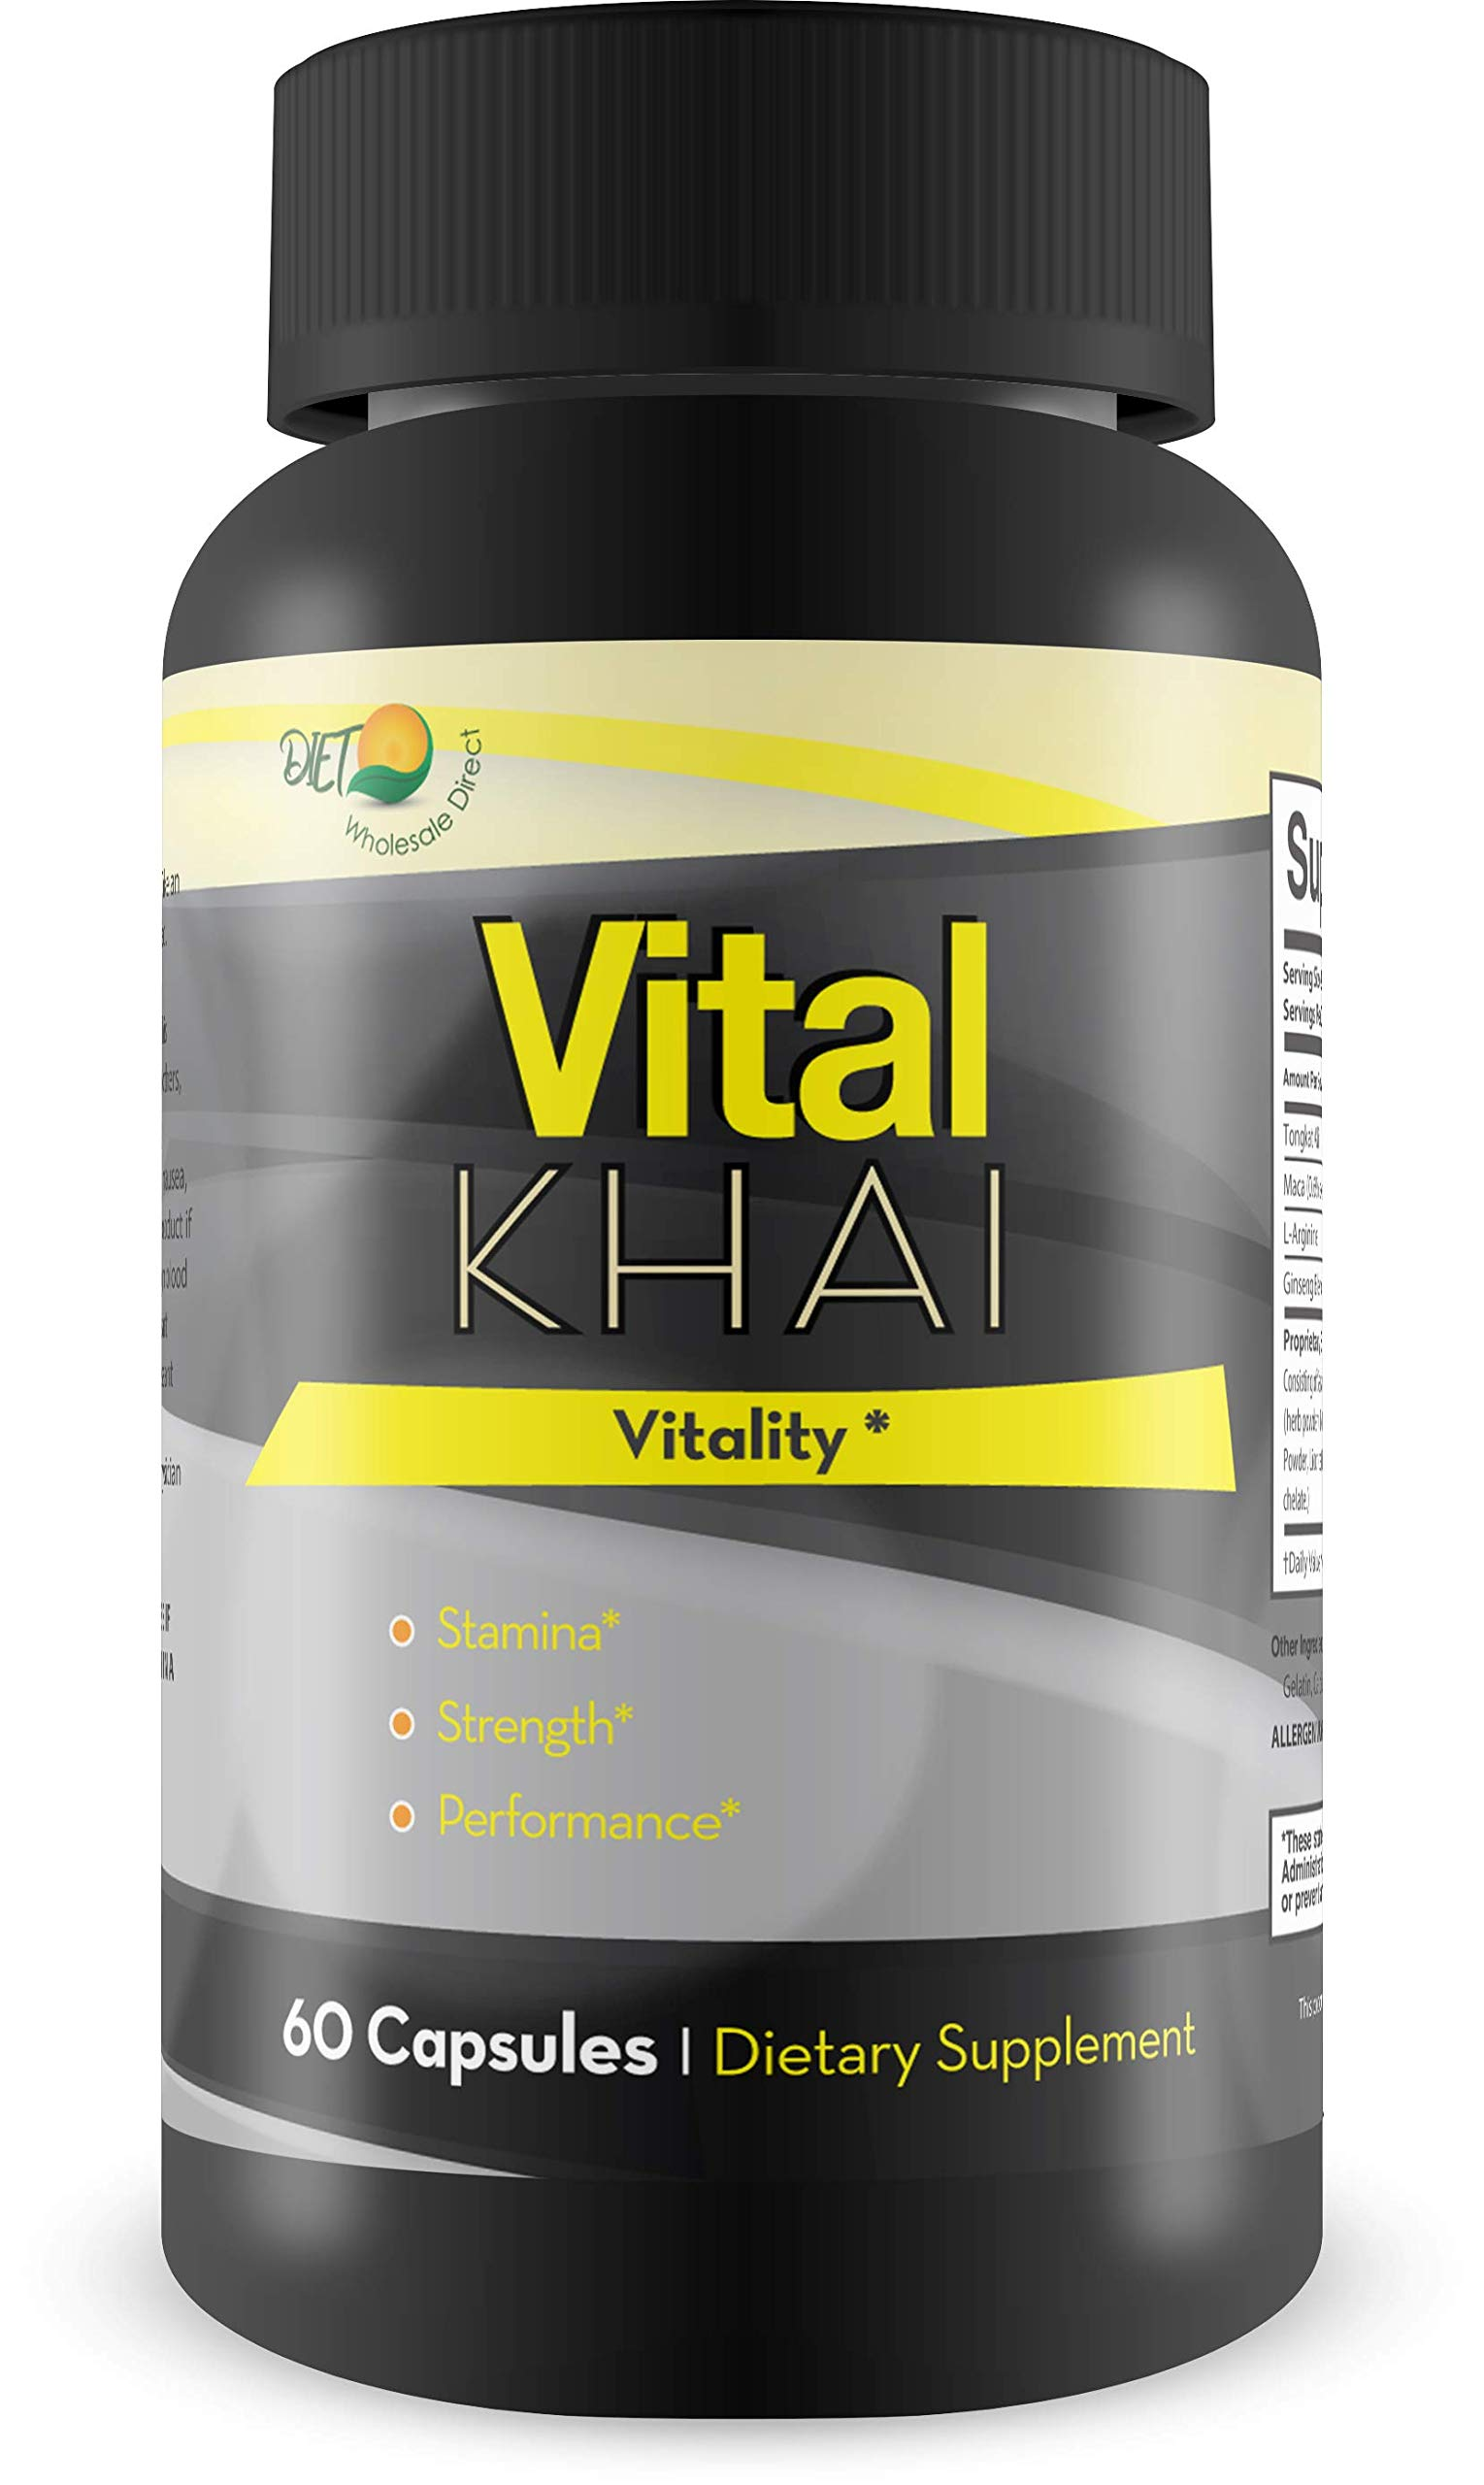 Vital Khai Vitality - Strength - Stamina - Performance - Help Boost Your Male Drive and Energy - Feel The Youthful Power of Naturally Supported Alpha Energy Today!